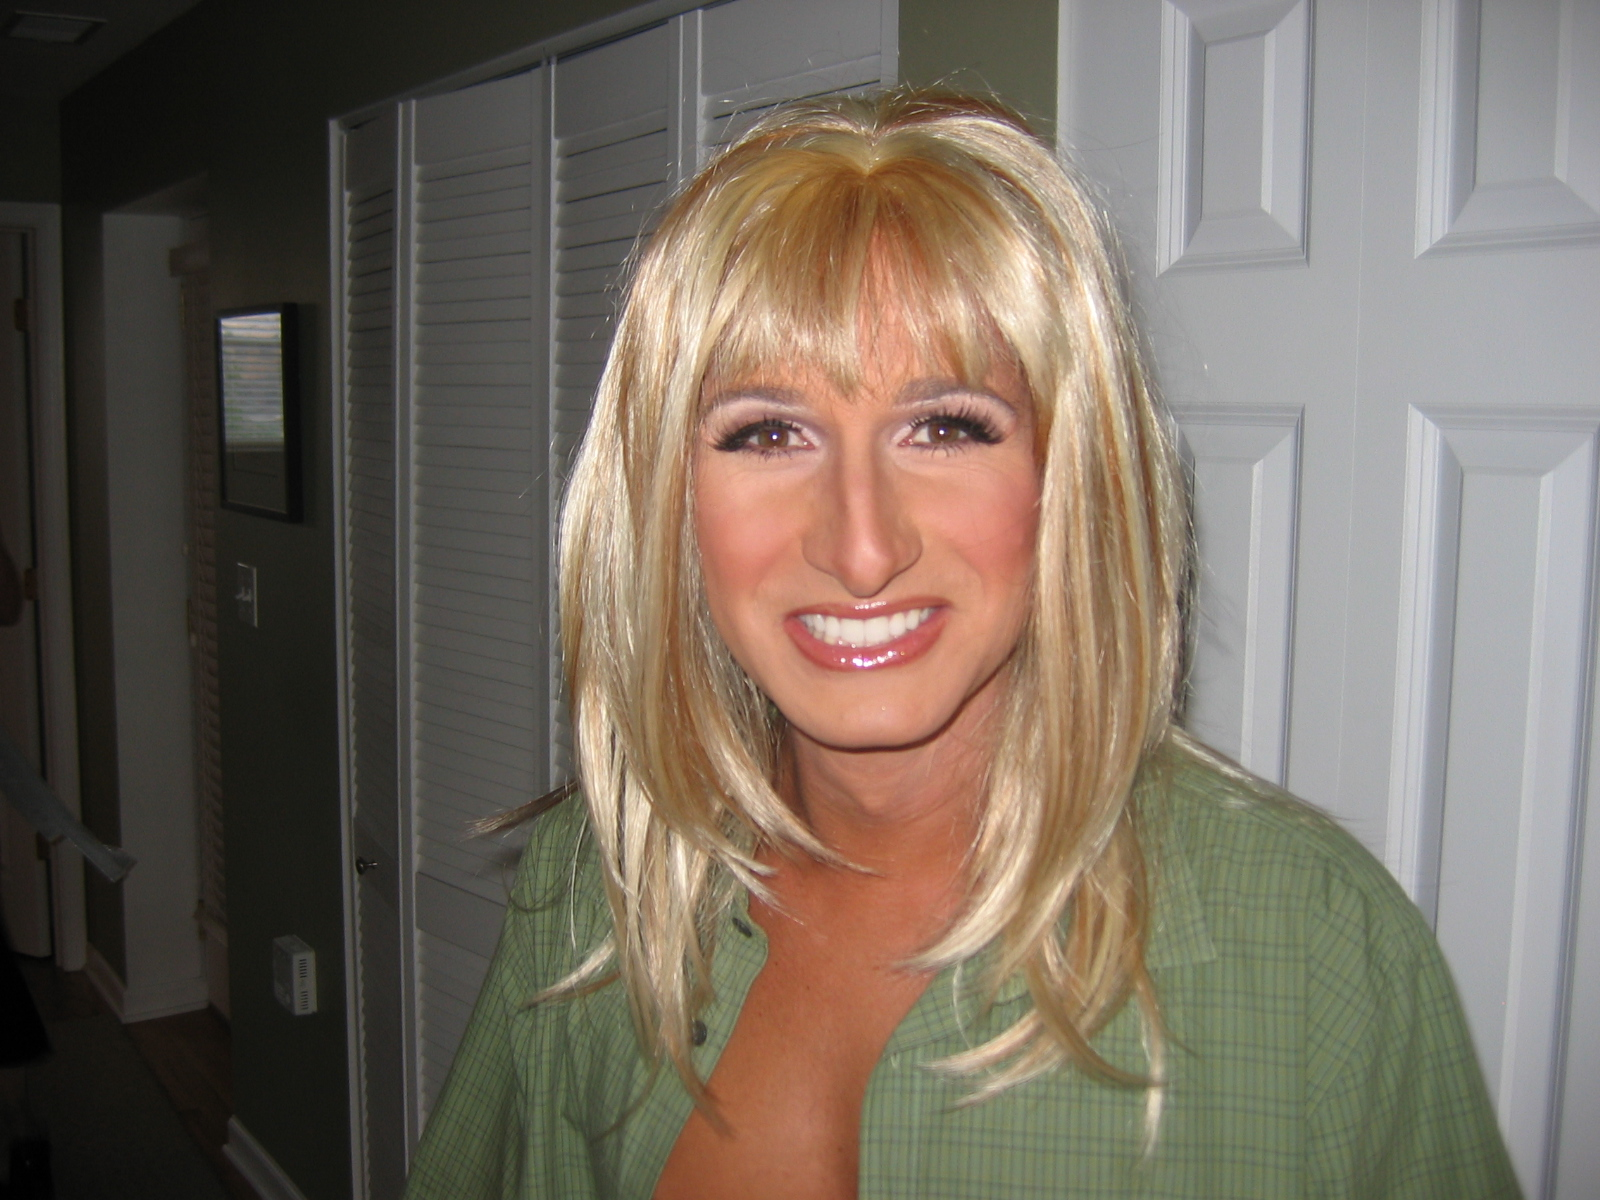 fileflickr blonde wigged man crossdressingjpg ��������������������